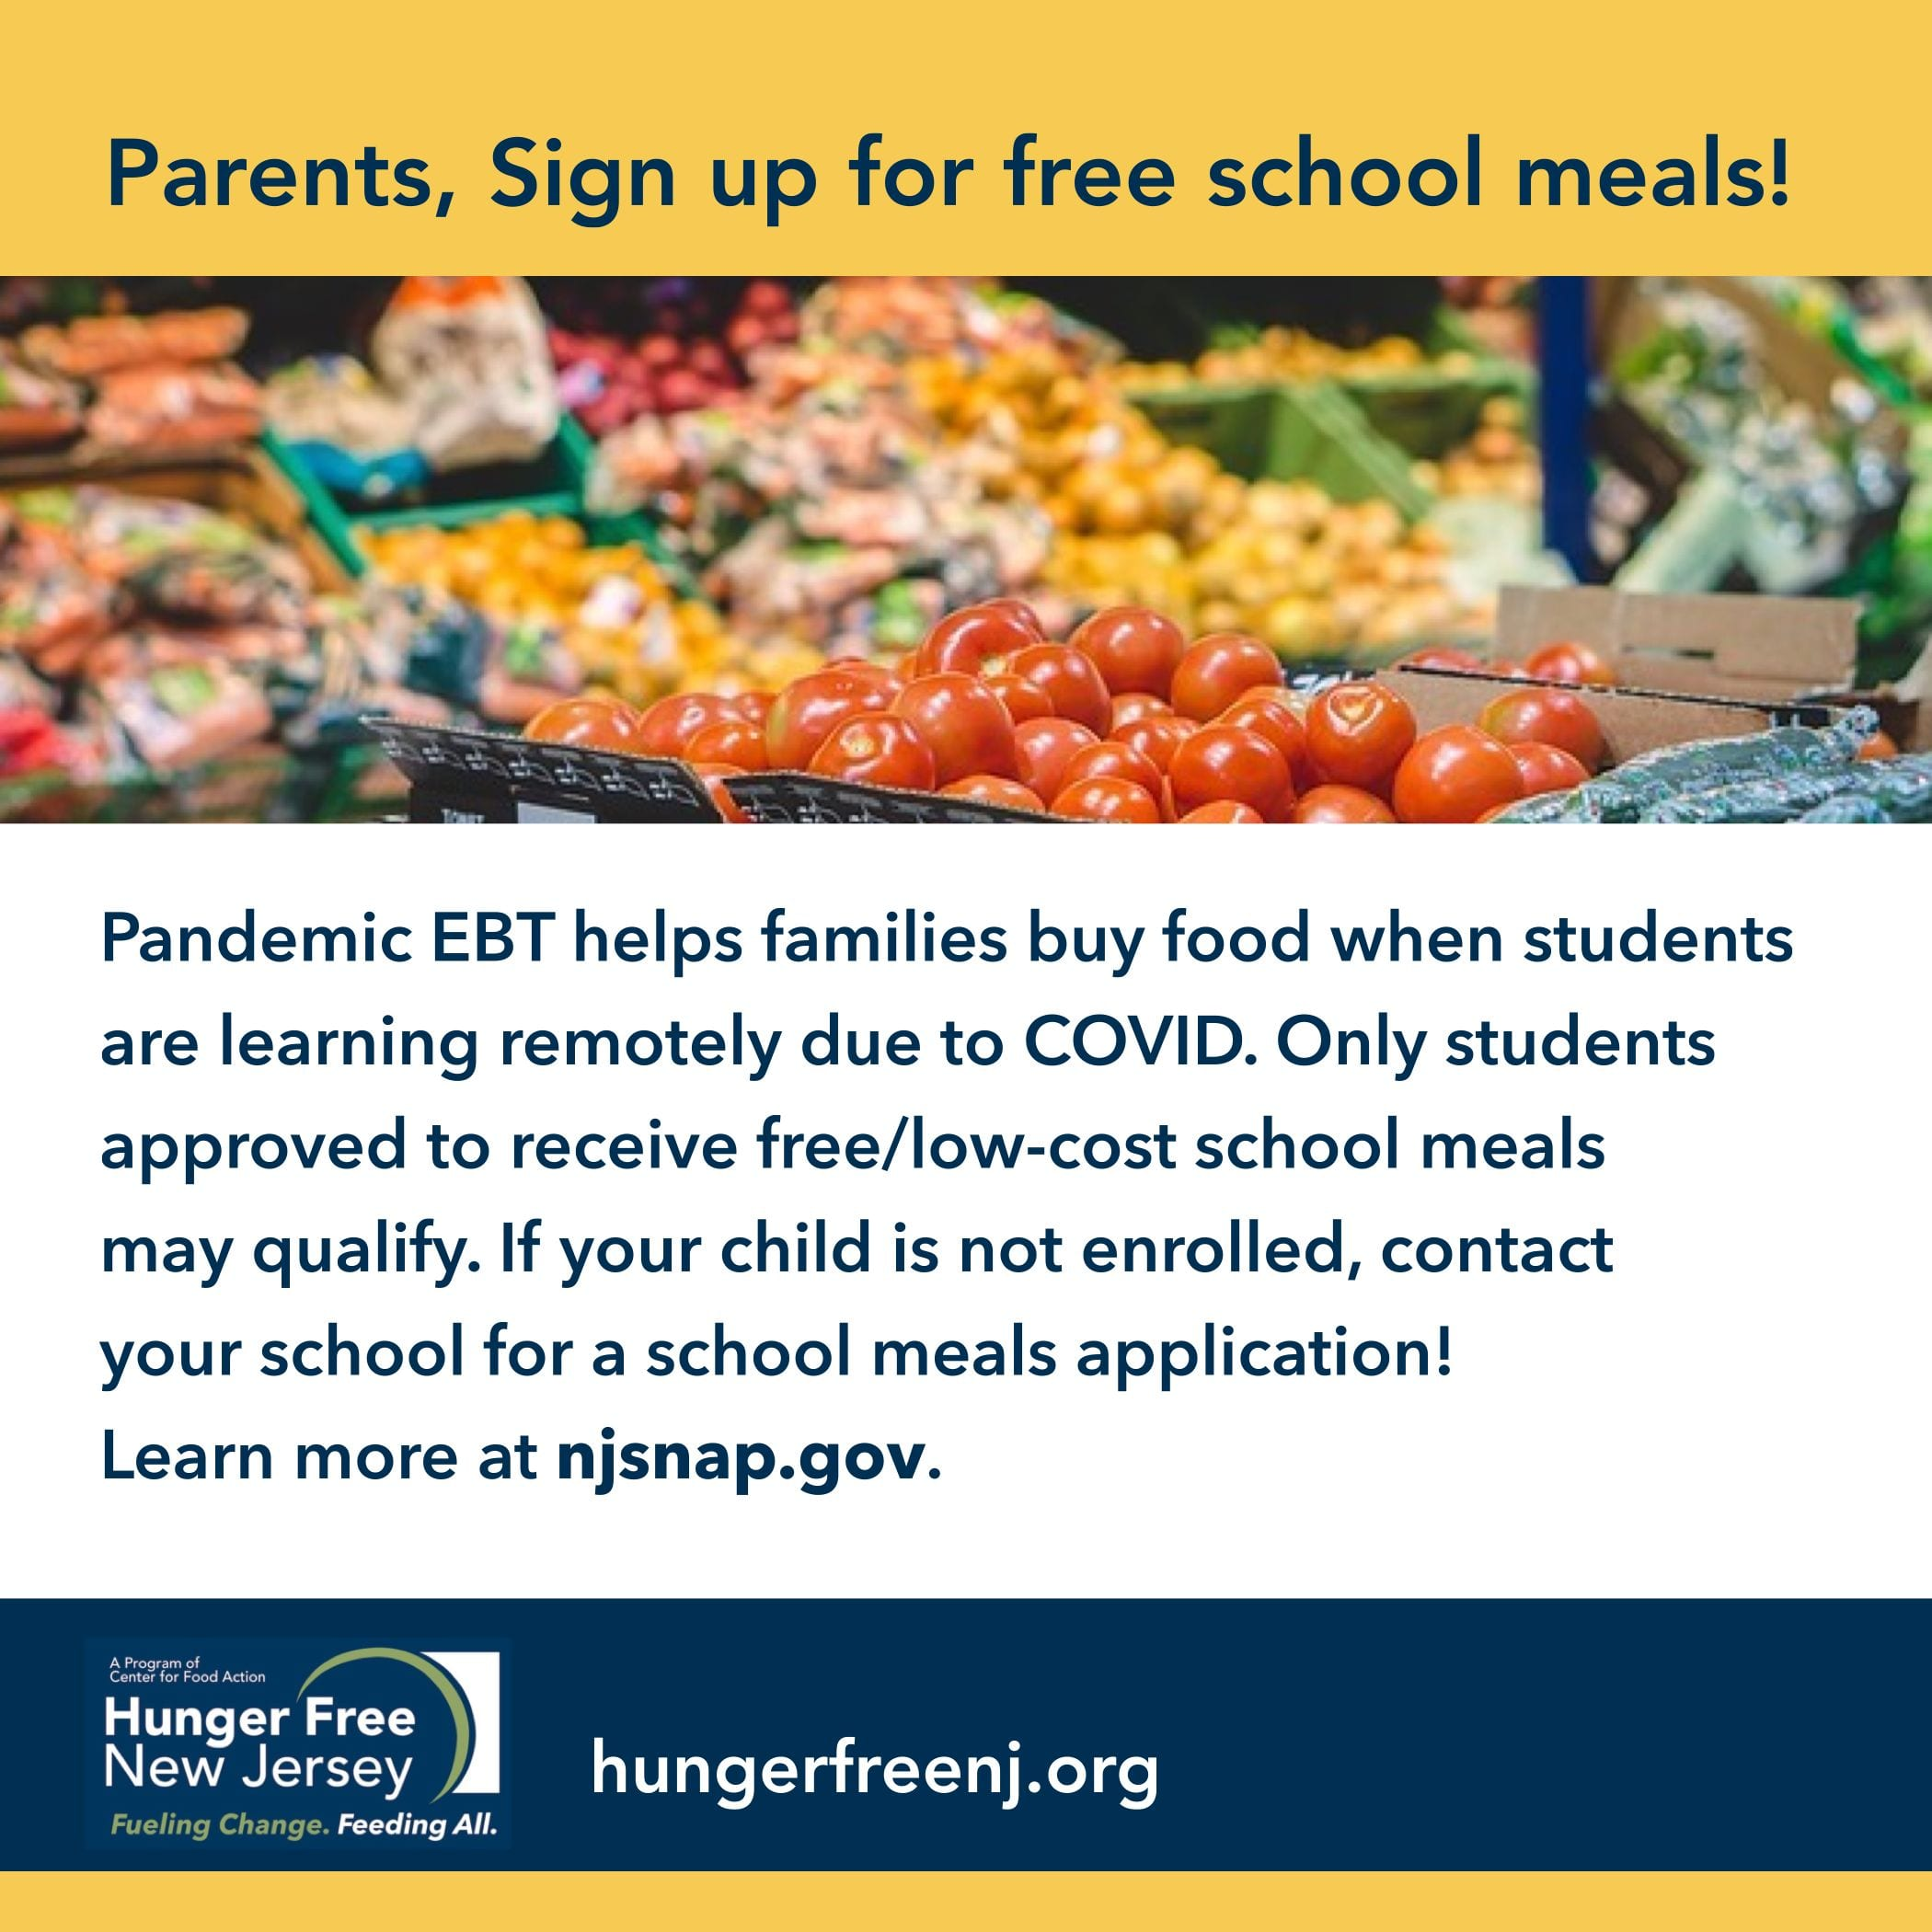 Hey Parents! Sign up for school meals.